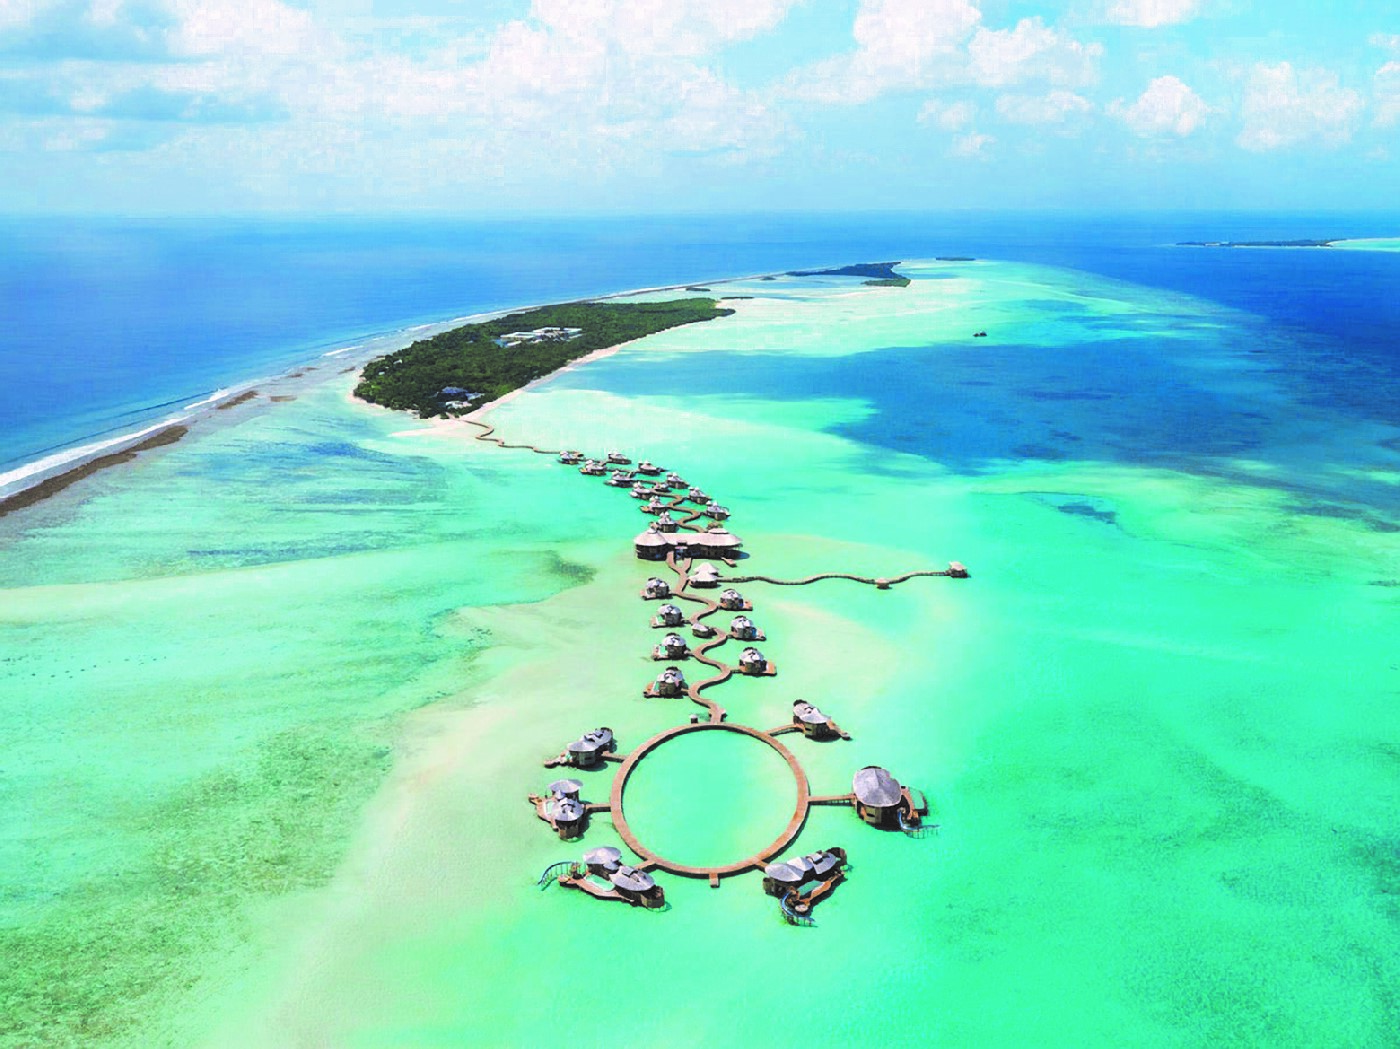 Aerial view of Soneva Resort Maldives